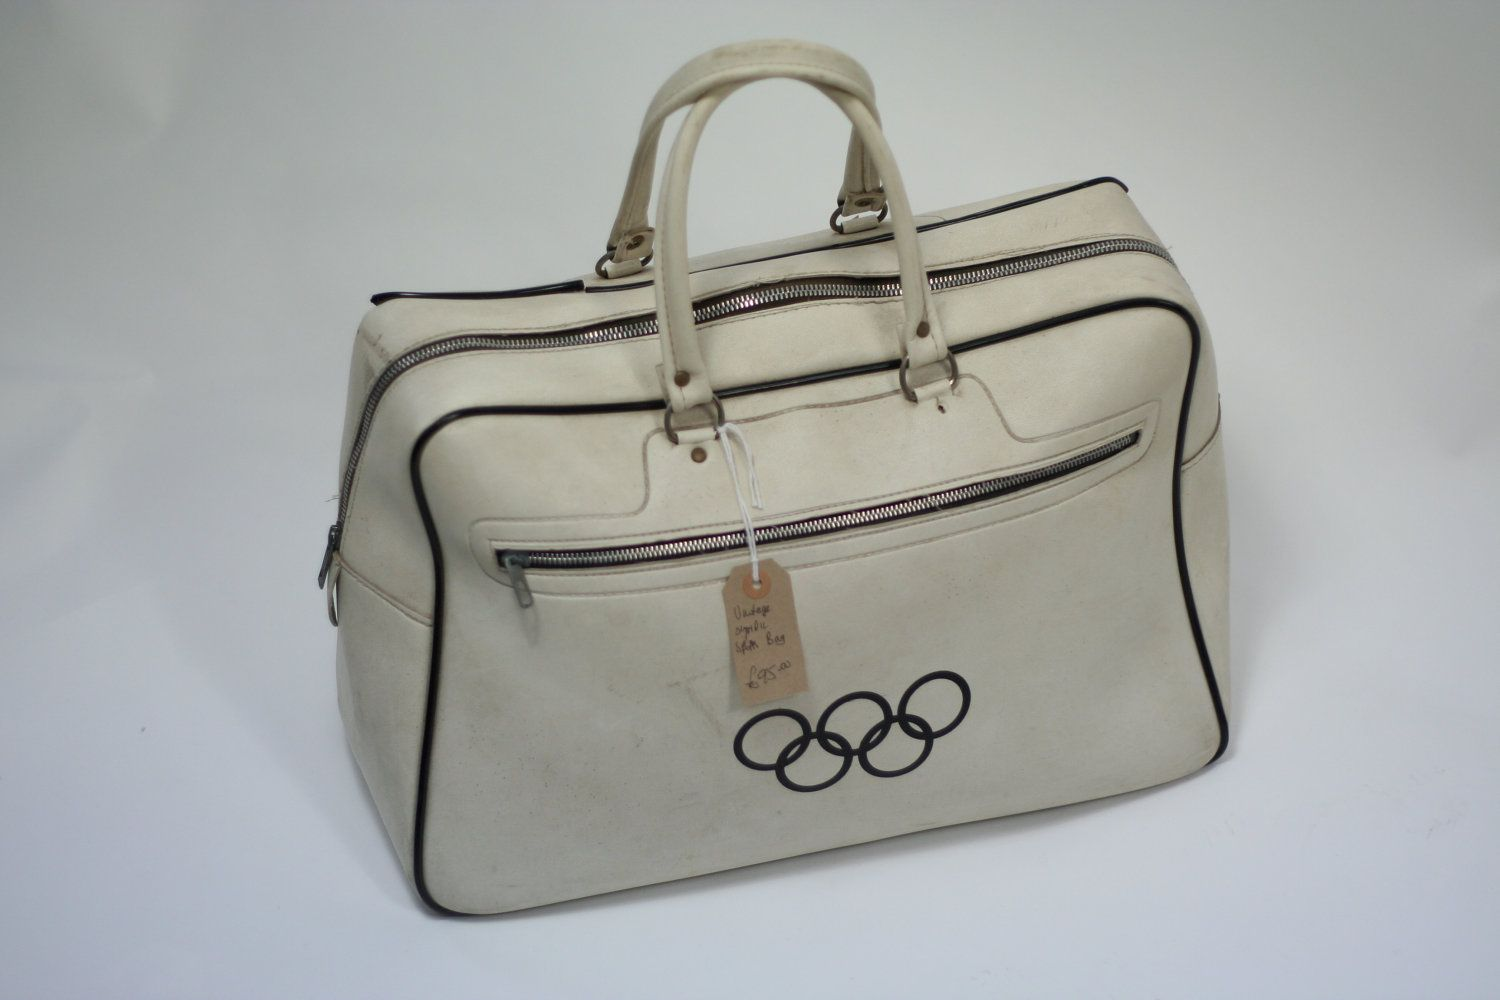 A snazzy holdall.